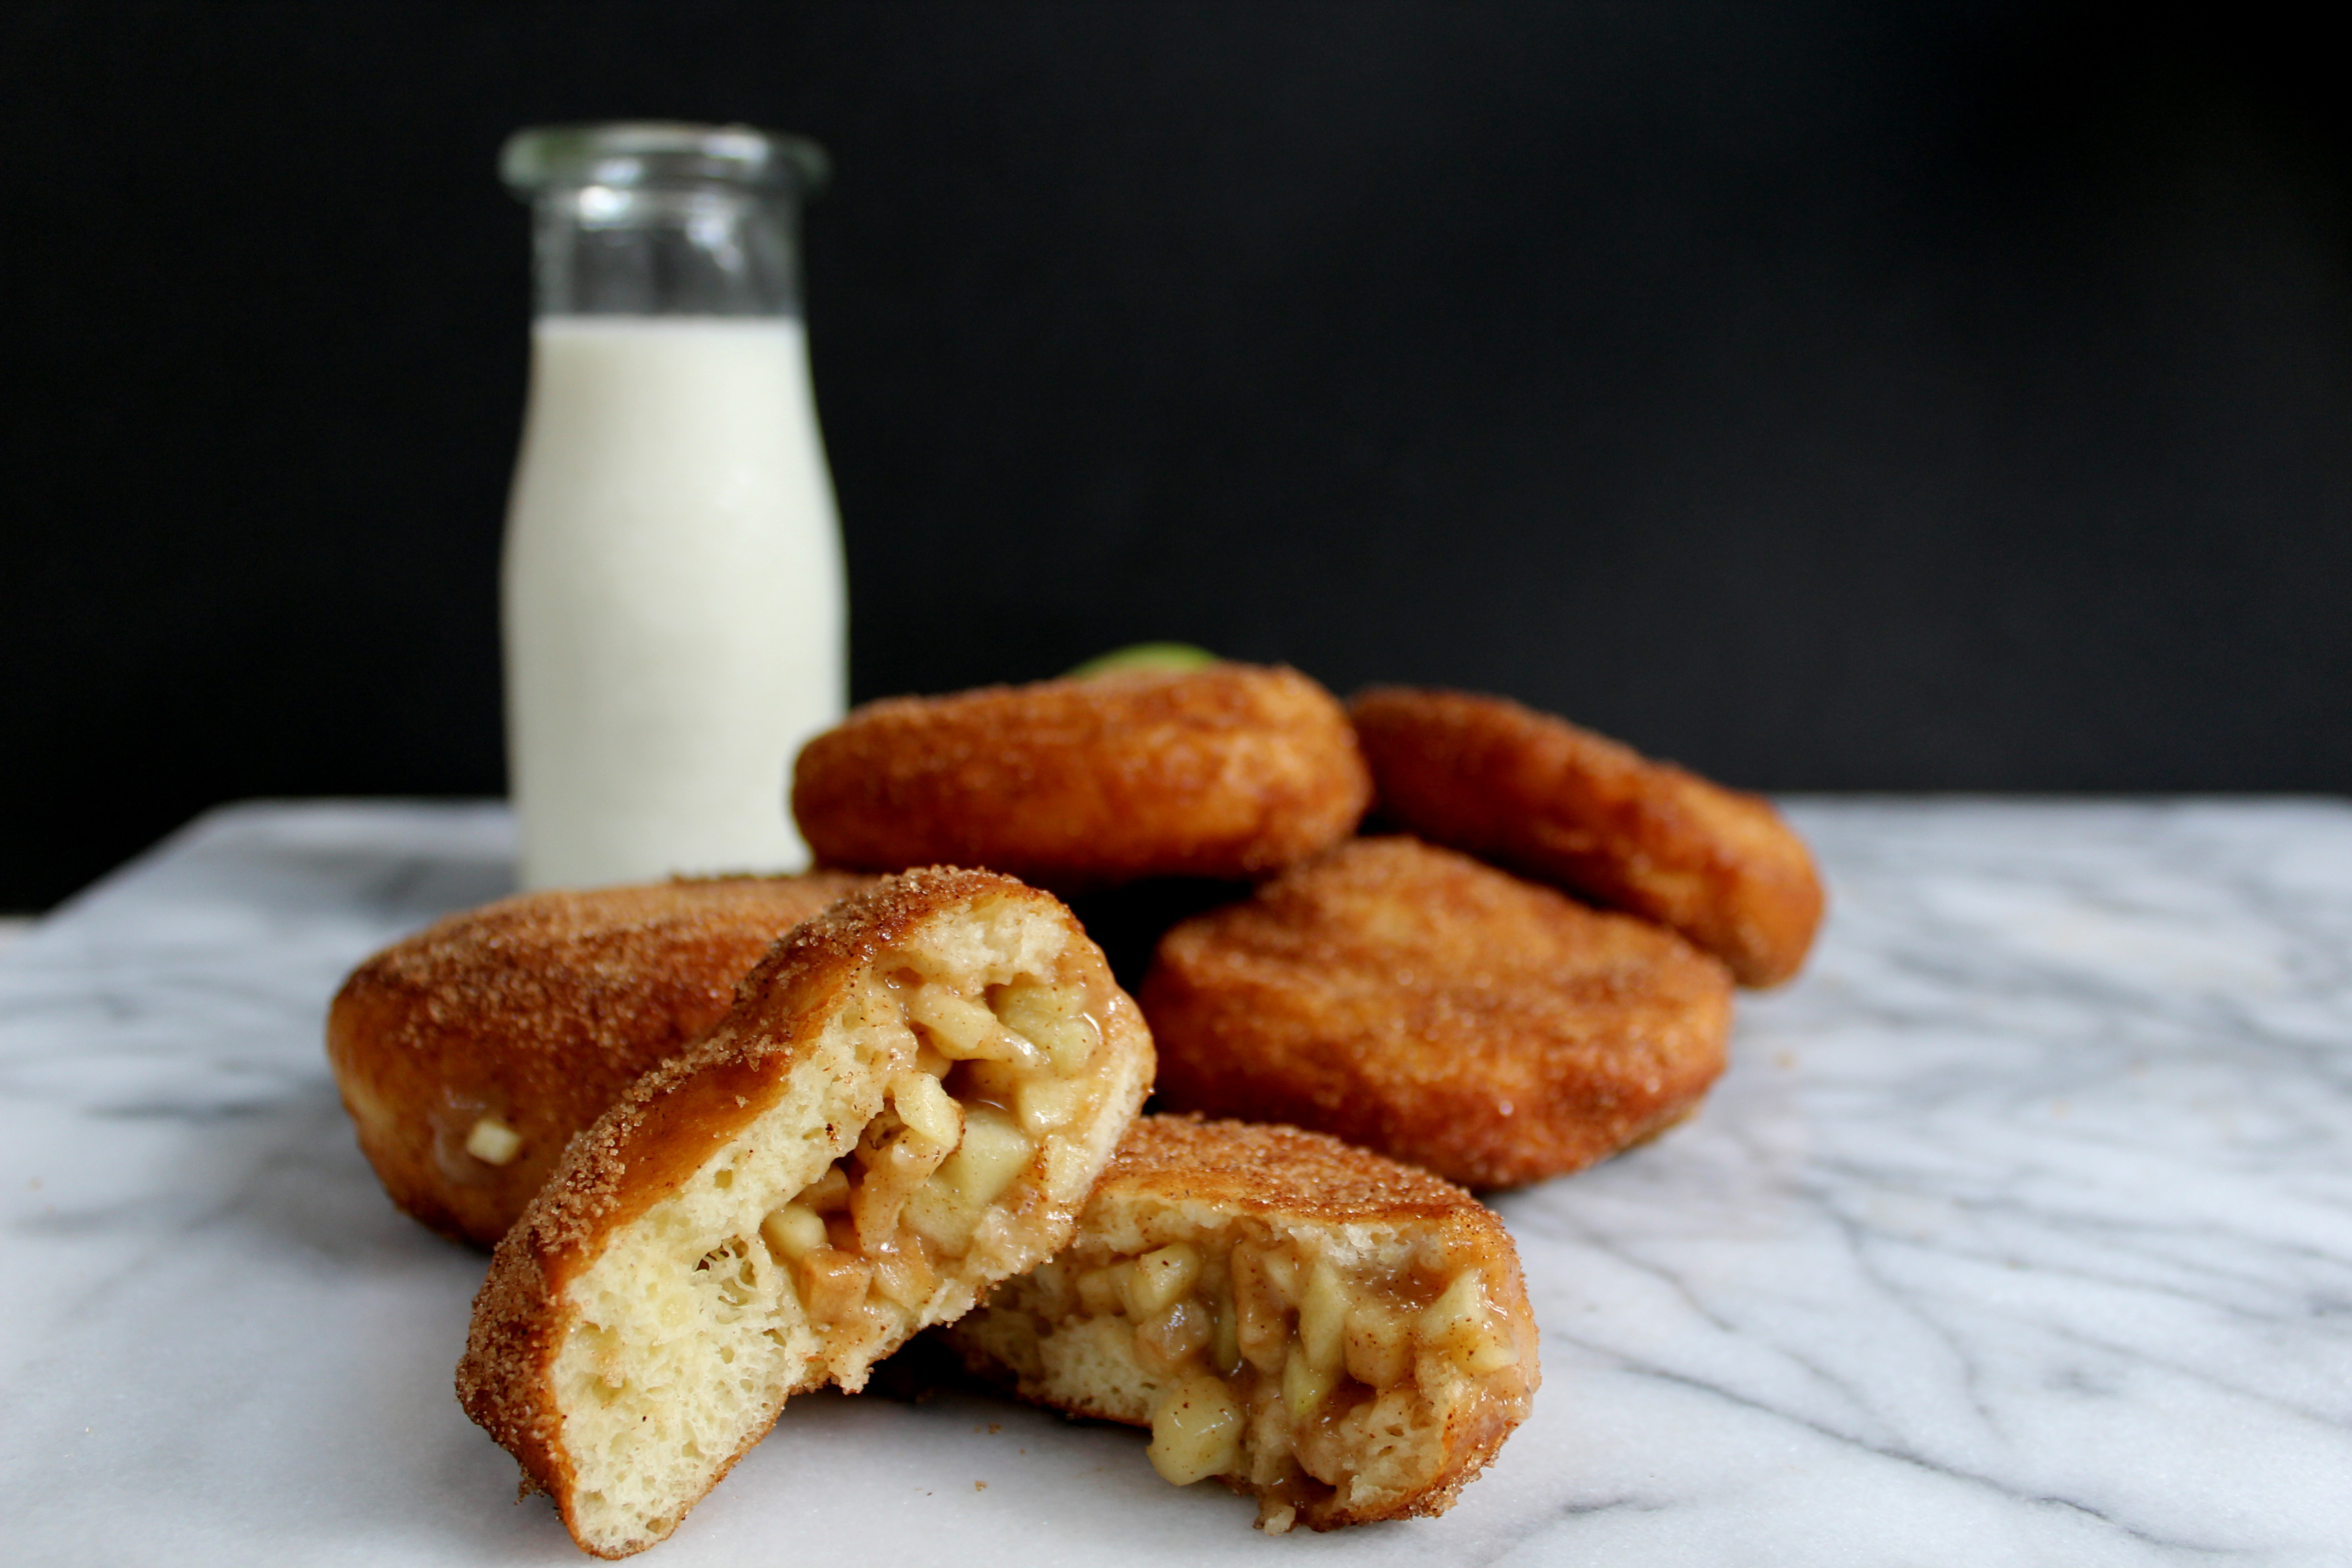 Cinnamon Sugar Jelly Doughnuts with Apple Pie Filling